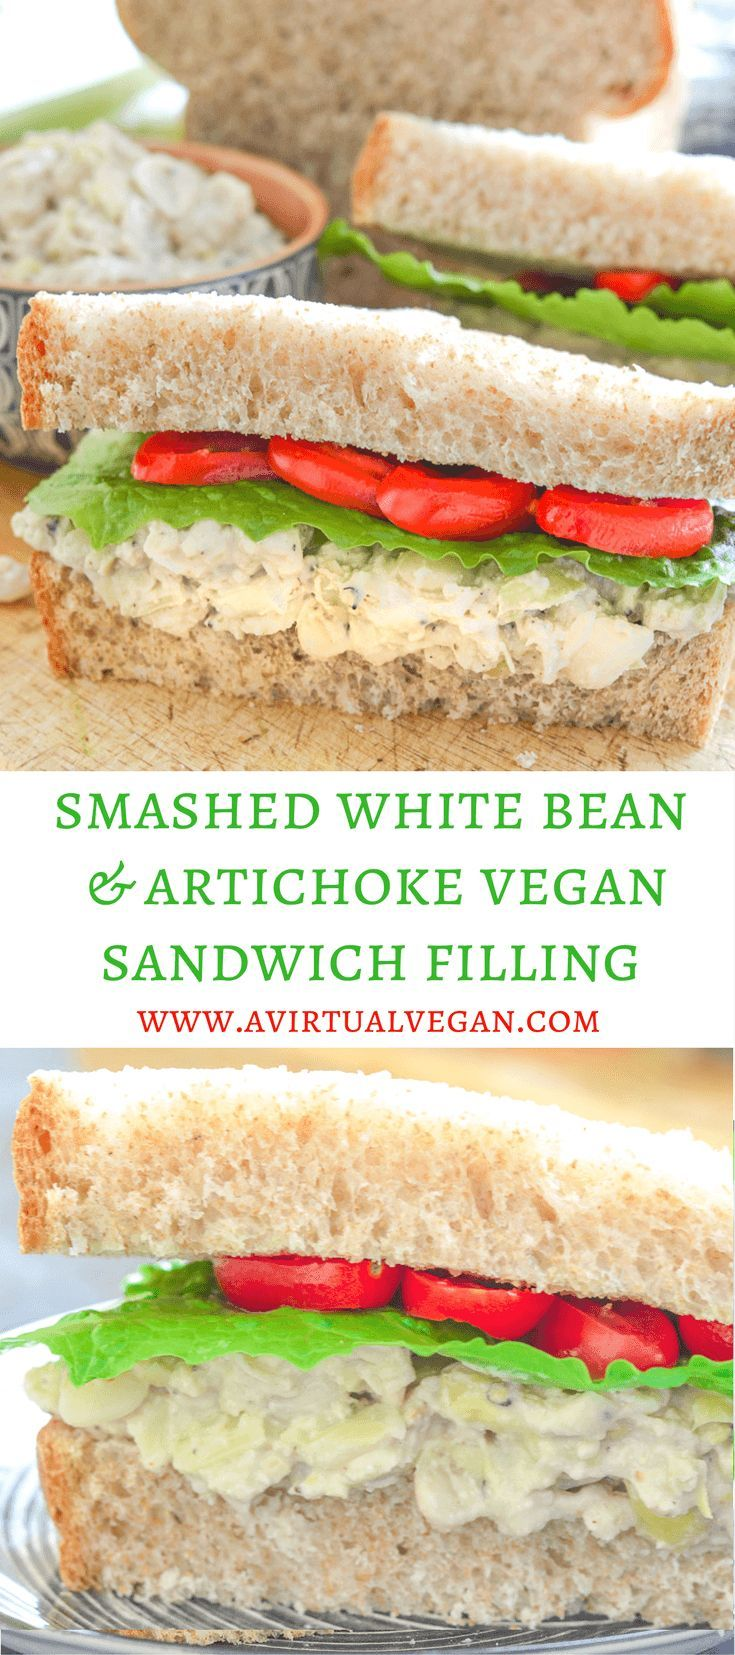 White Bean Artichoke Vegan Sandwich Filling